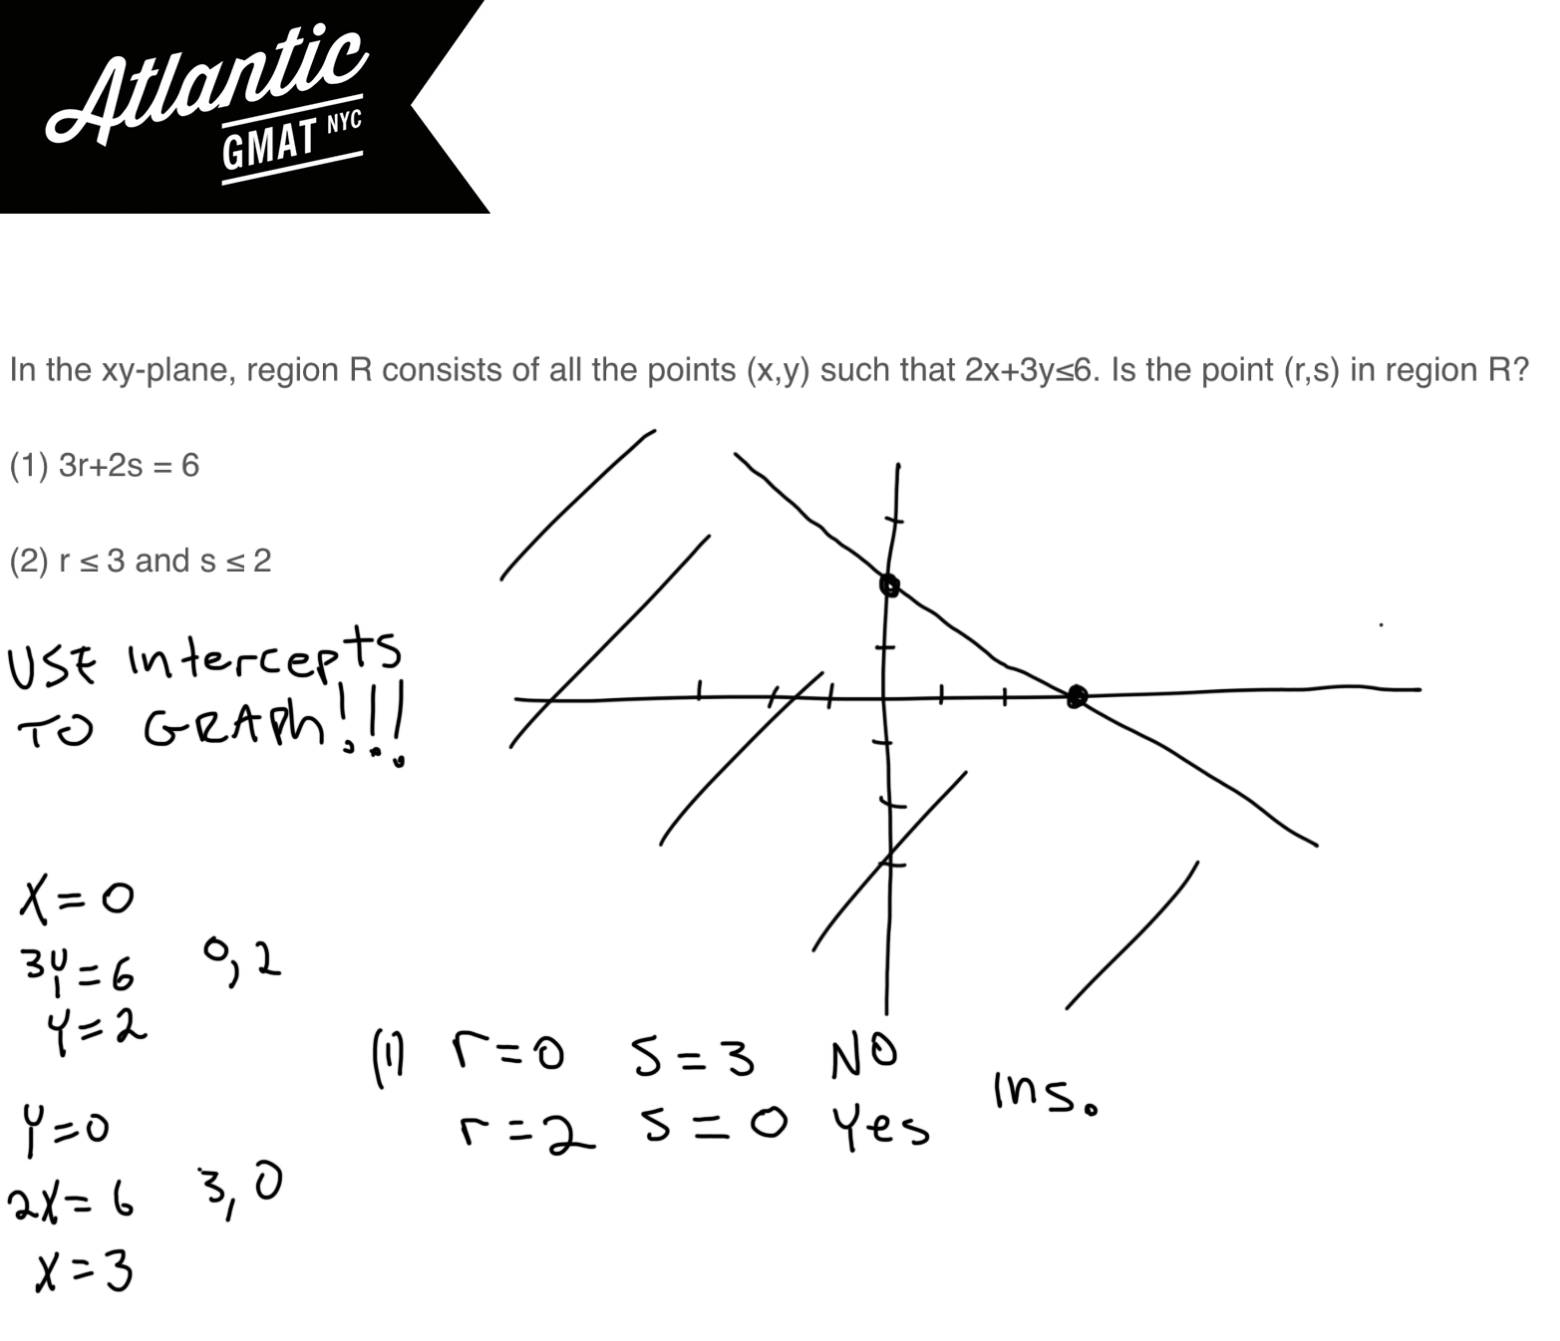 In the xy-plane, region R consists of all the points (x,y) such that 2x + 3y ≤ 6 GMAT Explanation 2